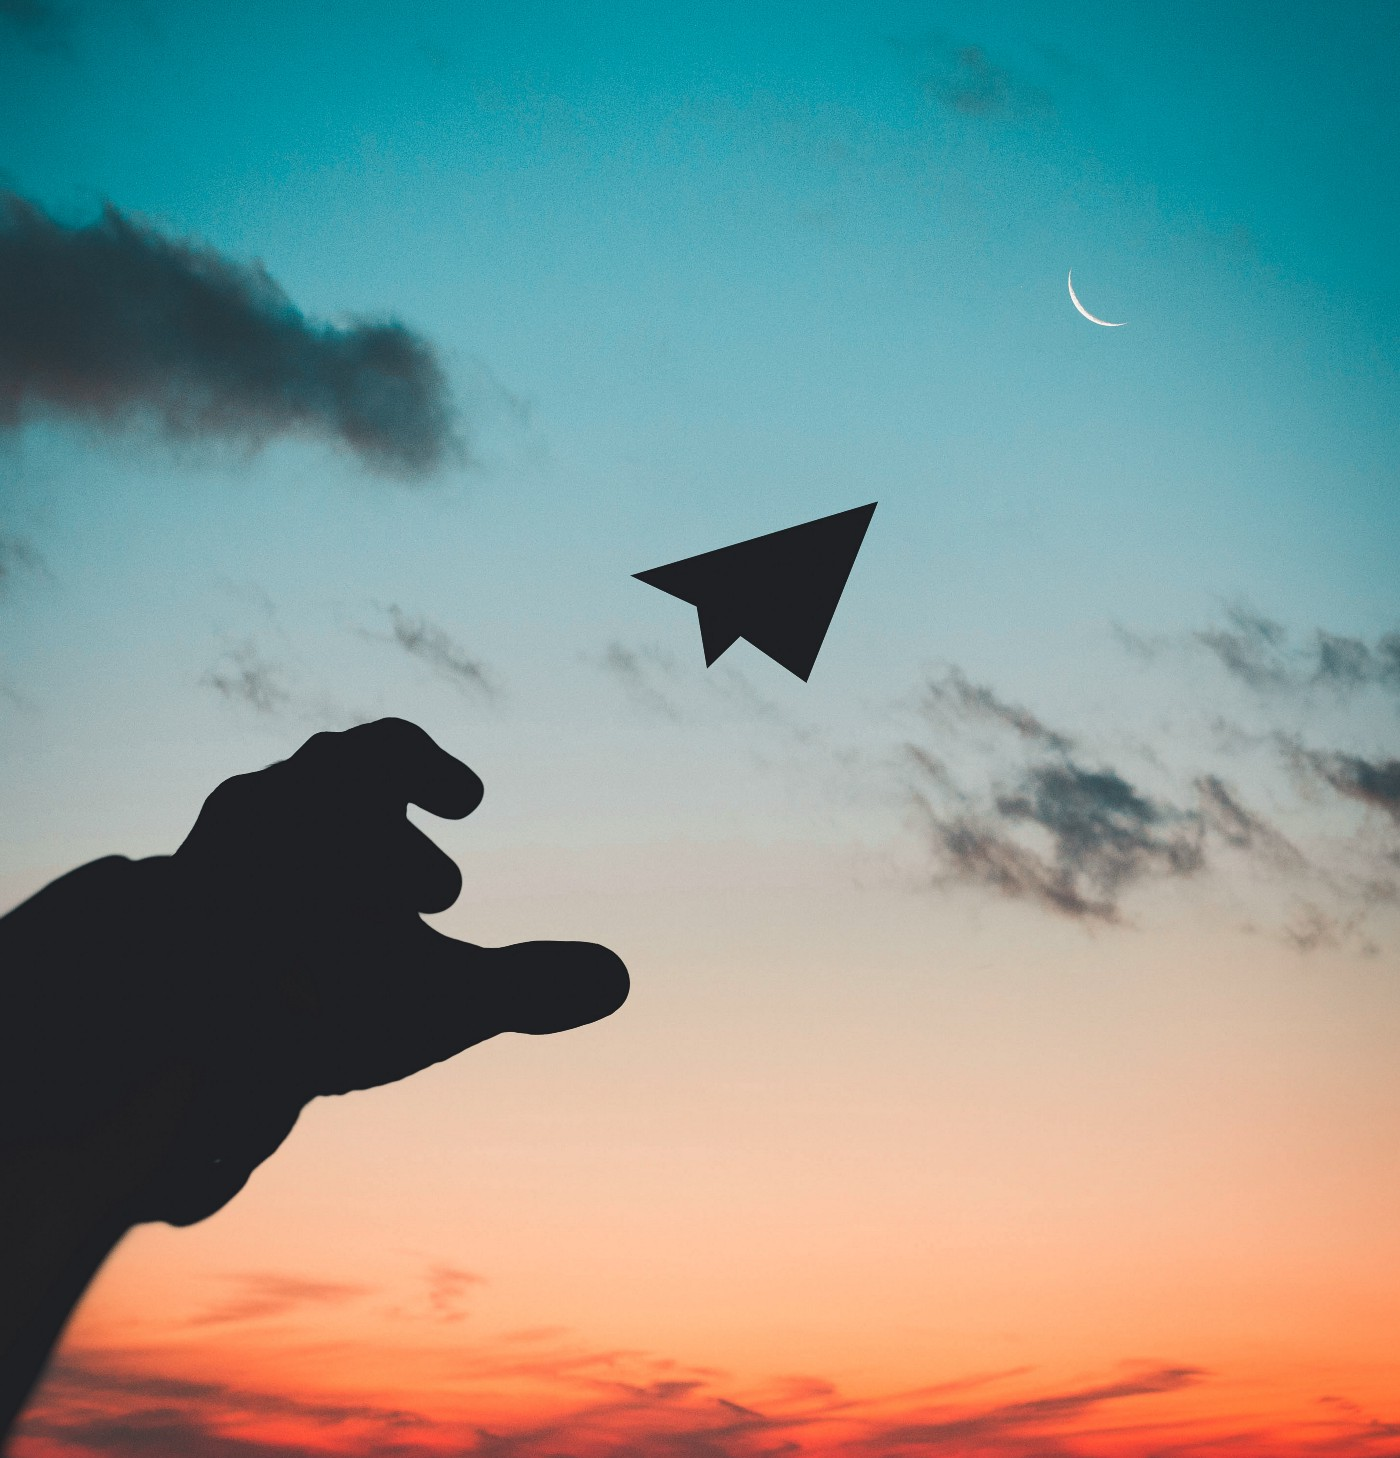 A silhouted hand tosses a paper airplane at the moon during sunset.